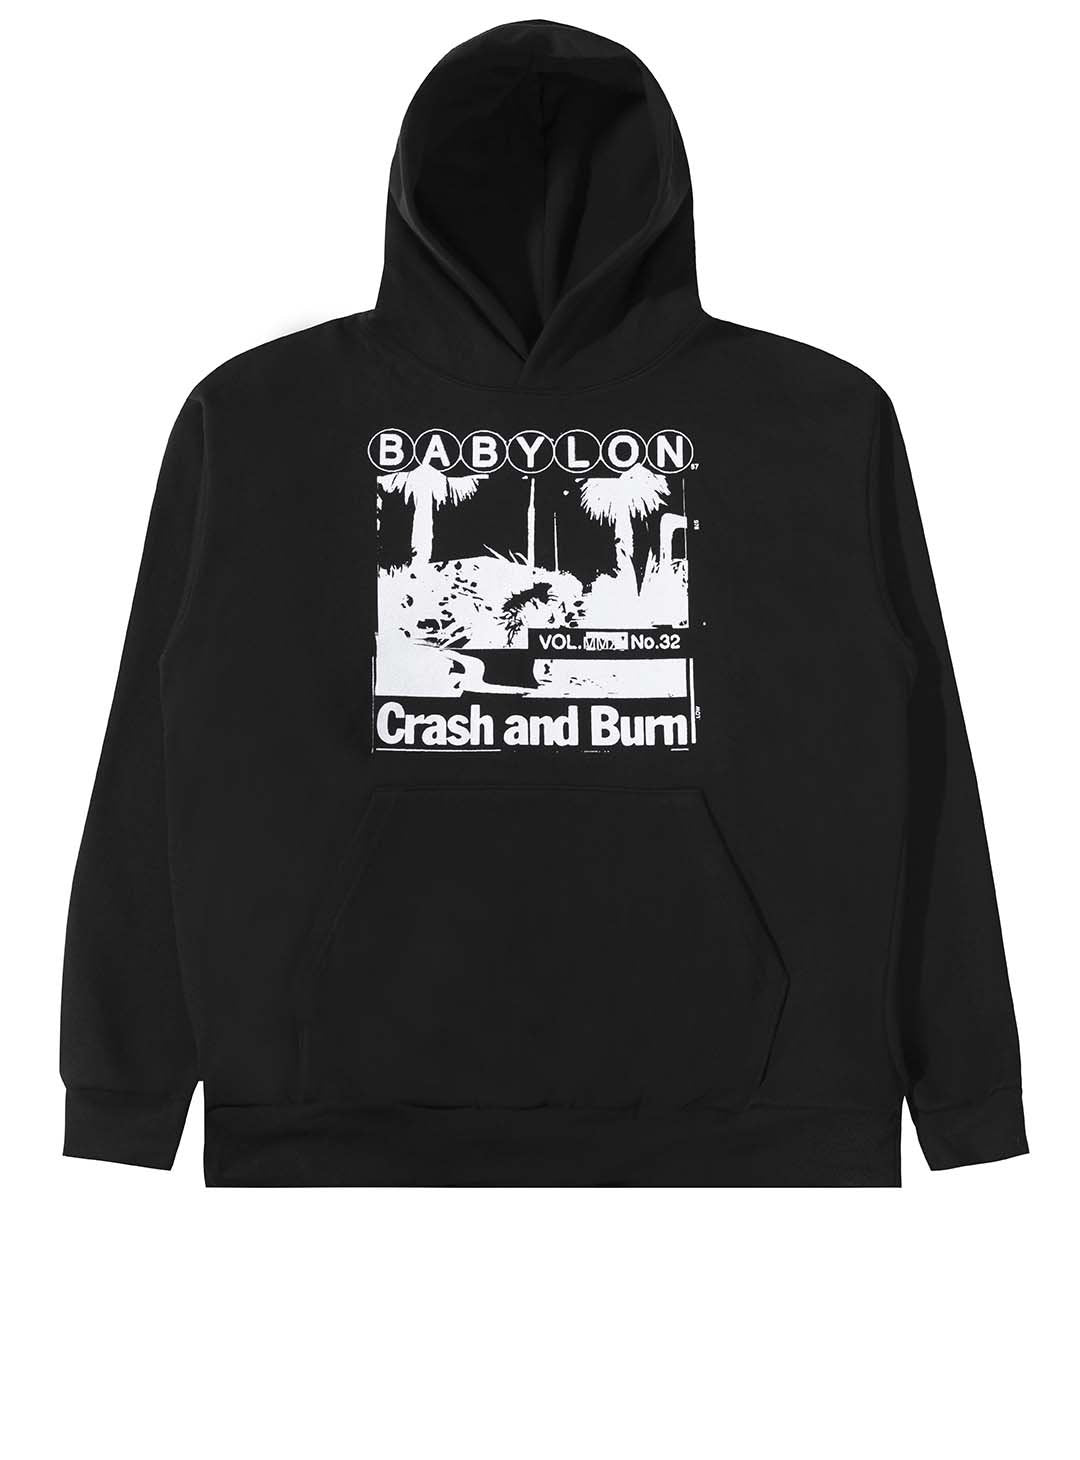 CRASH AND BURN HOODIE